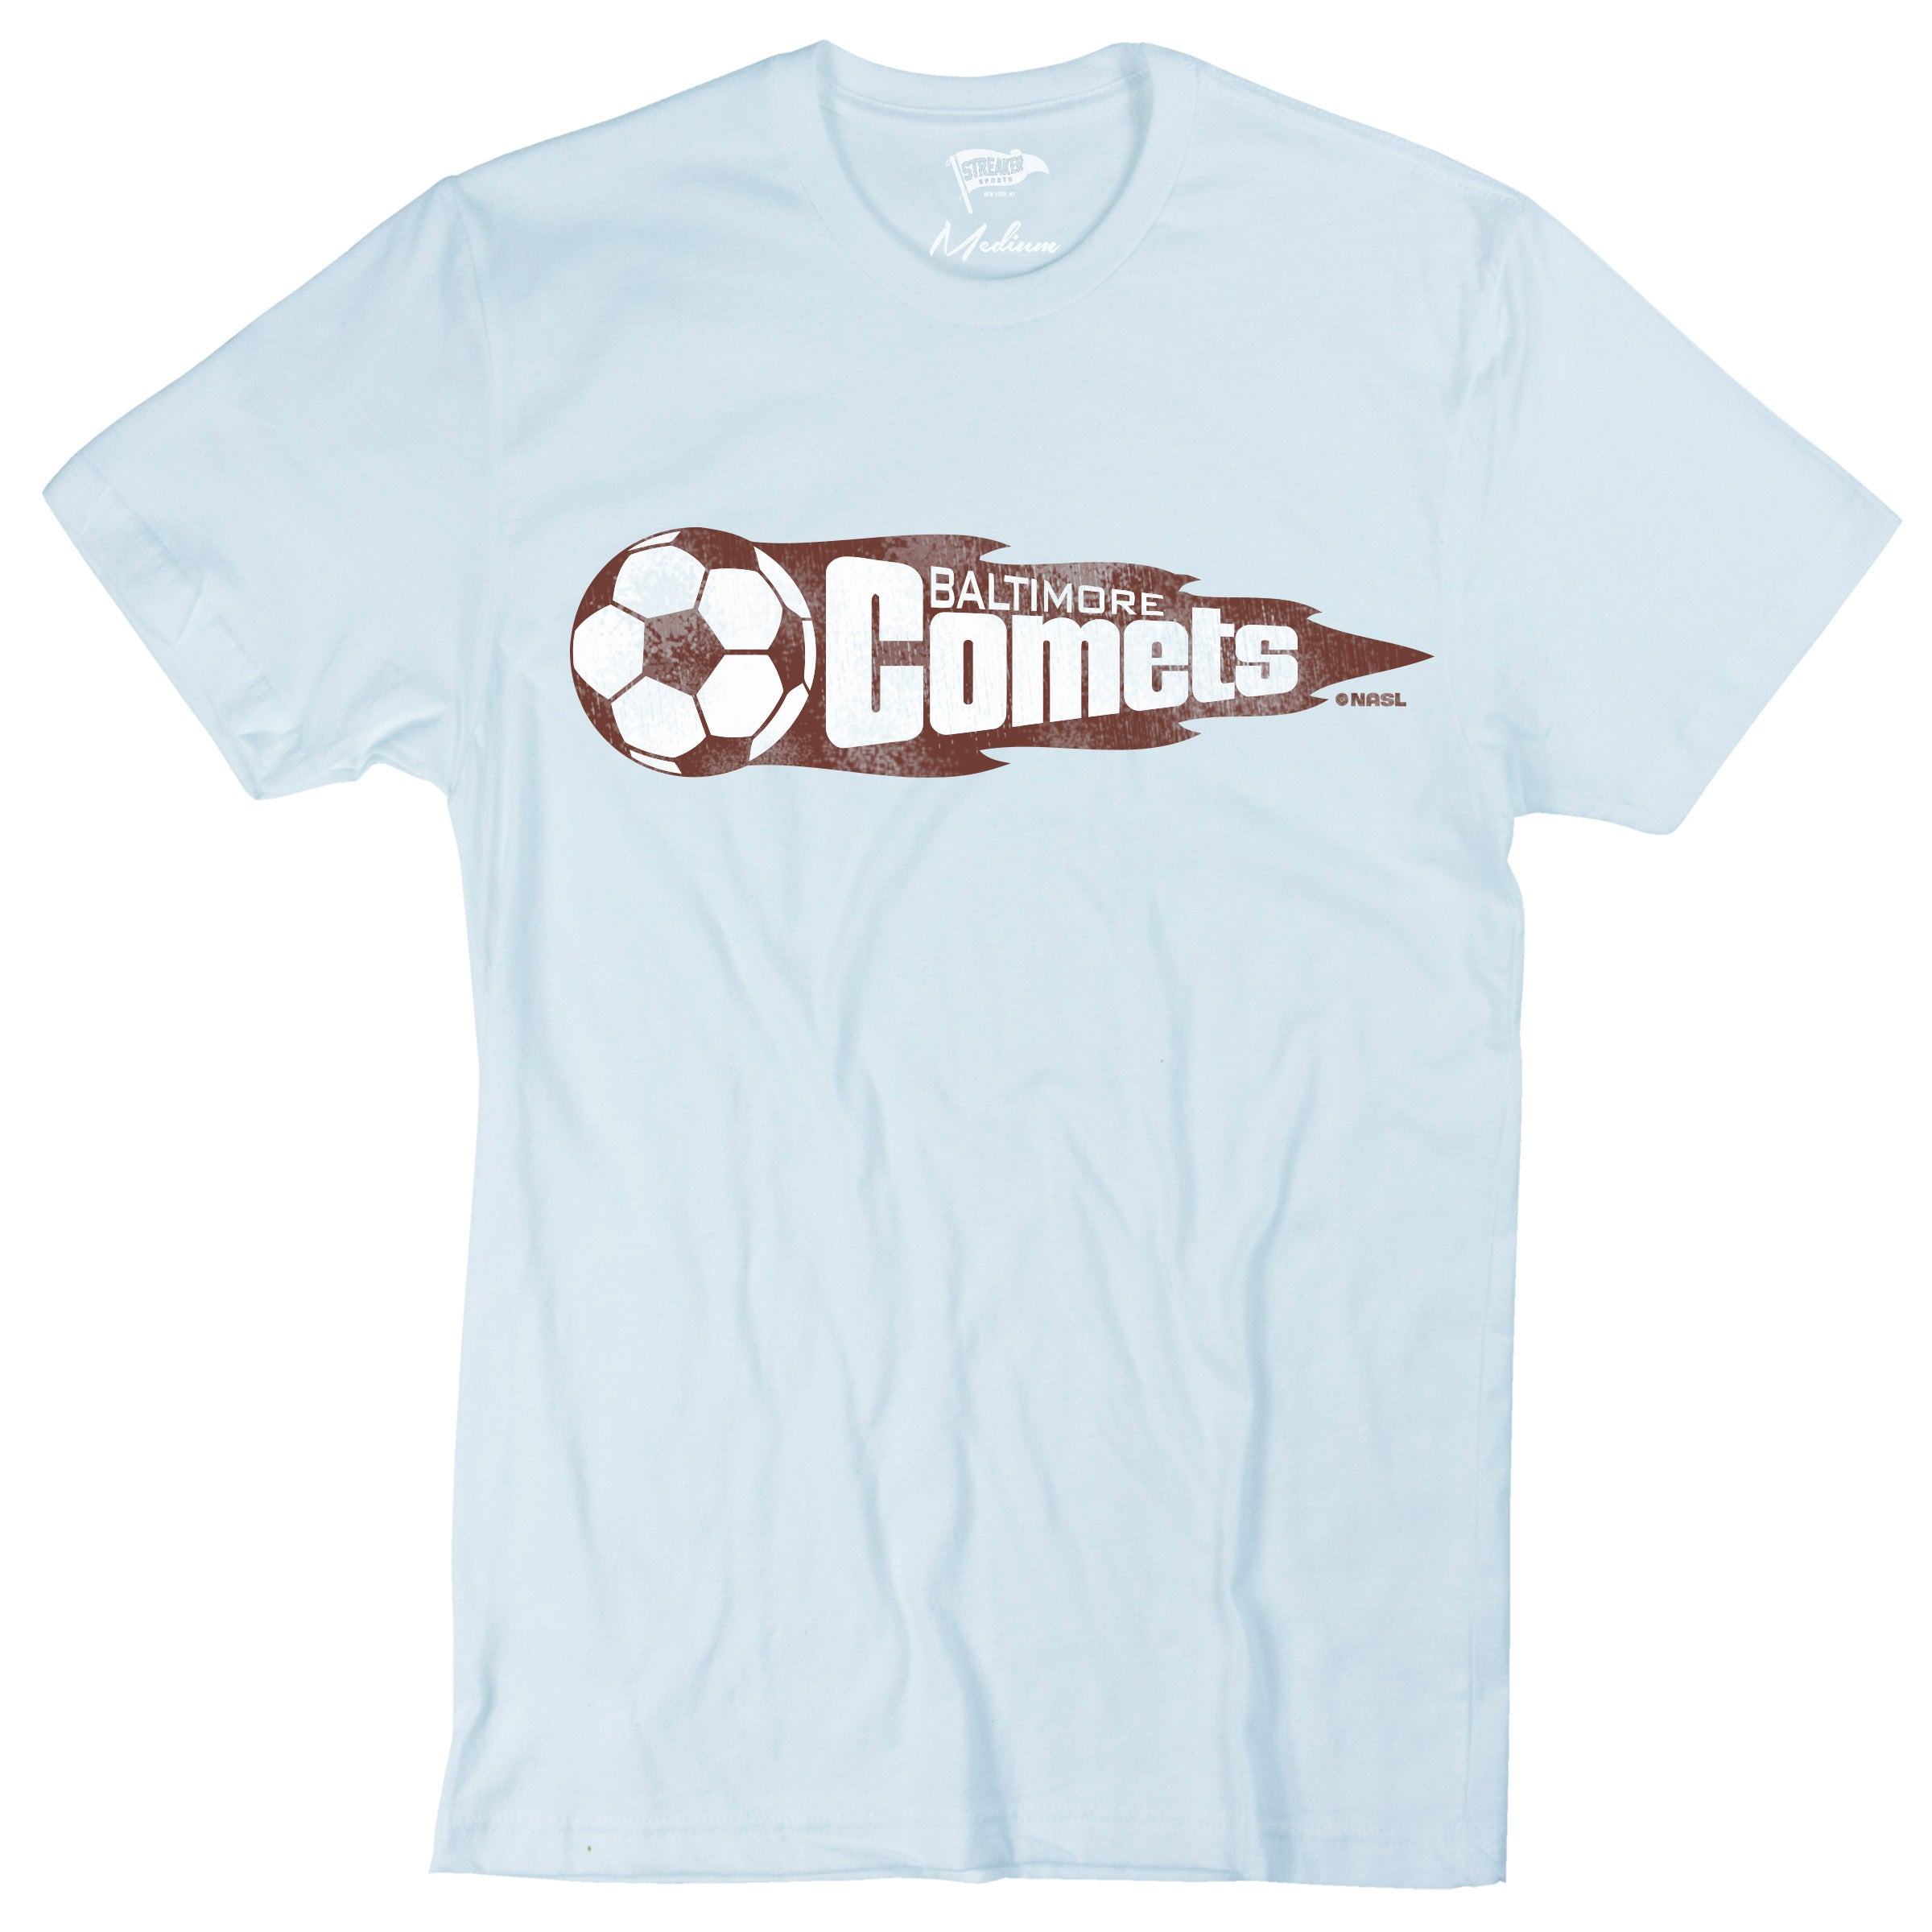 1974 Baltimore Comets Tee - Streaker Sports